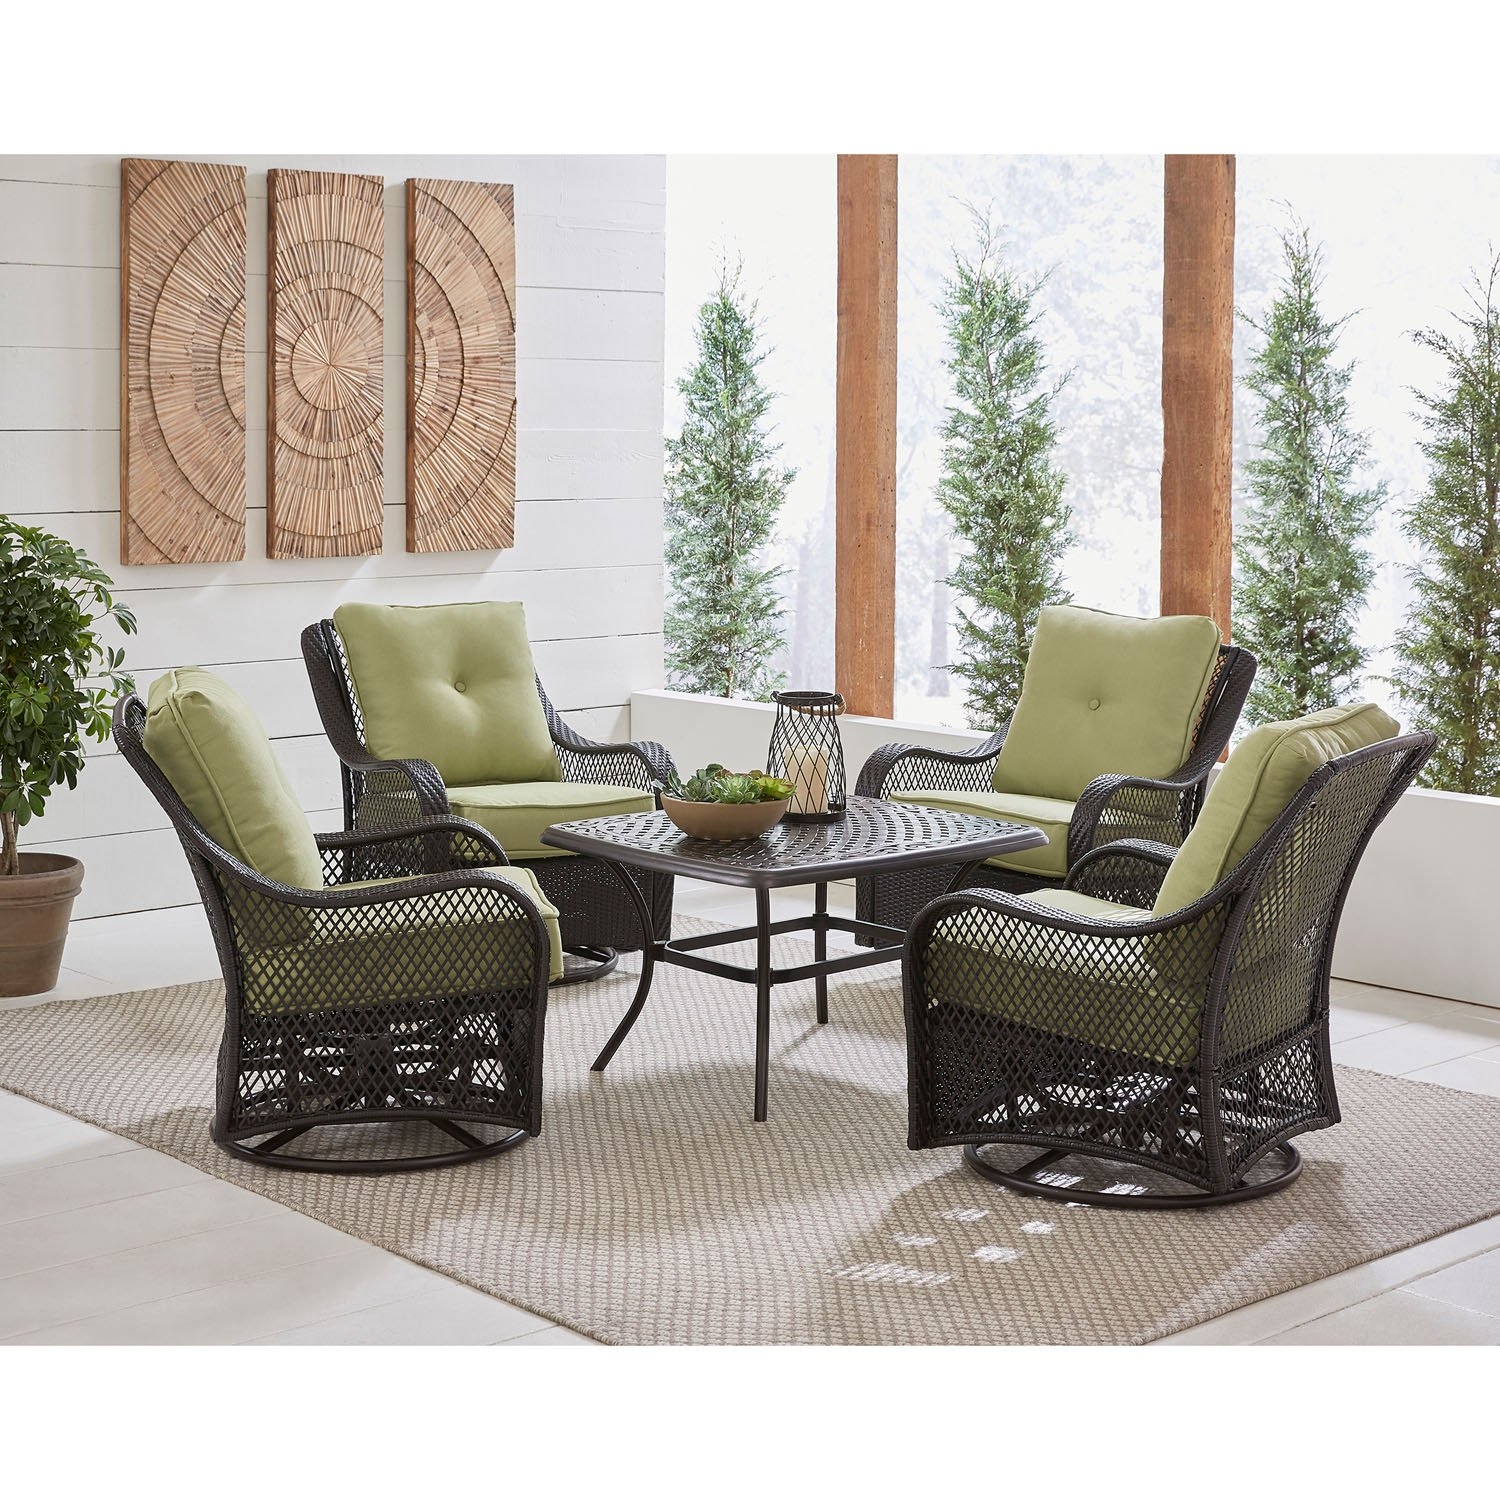 Hanover ORL5PCCTSW4-NVY Orleans 5-Piece Patio Chat Set In  Blue With 4 Swivel Rockers And A 24 X 50 Cast-Top Coffee Table Outdoor Furniture vy